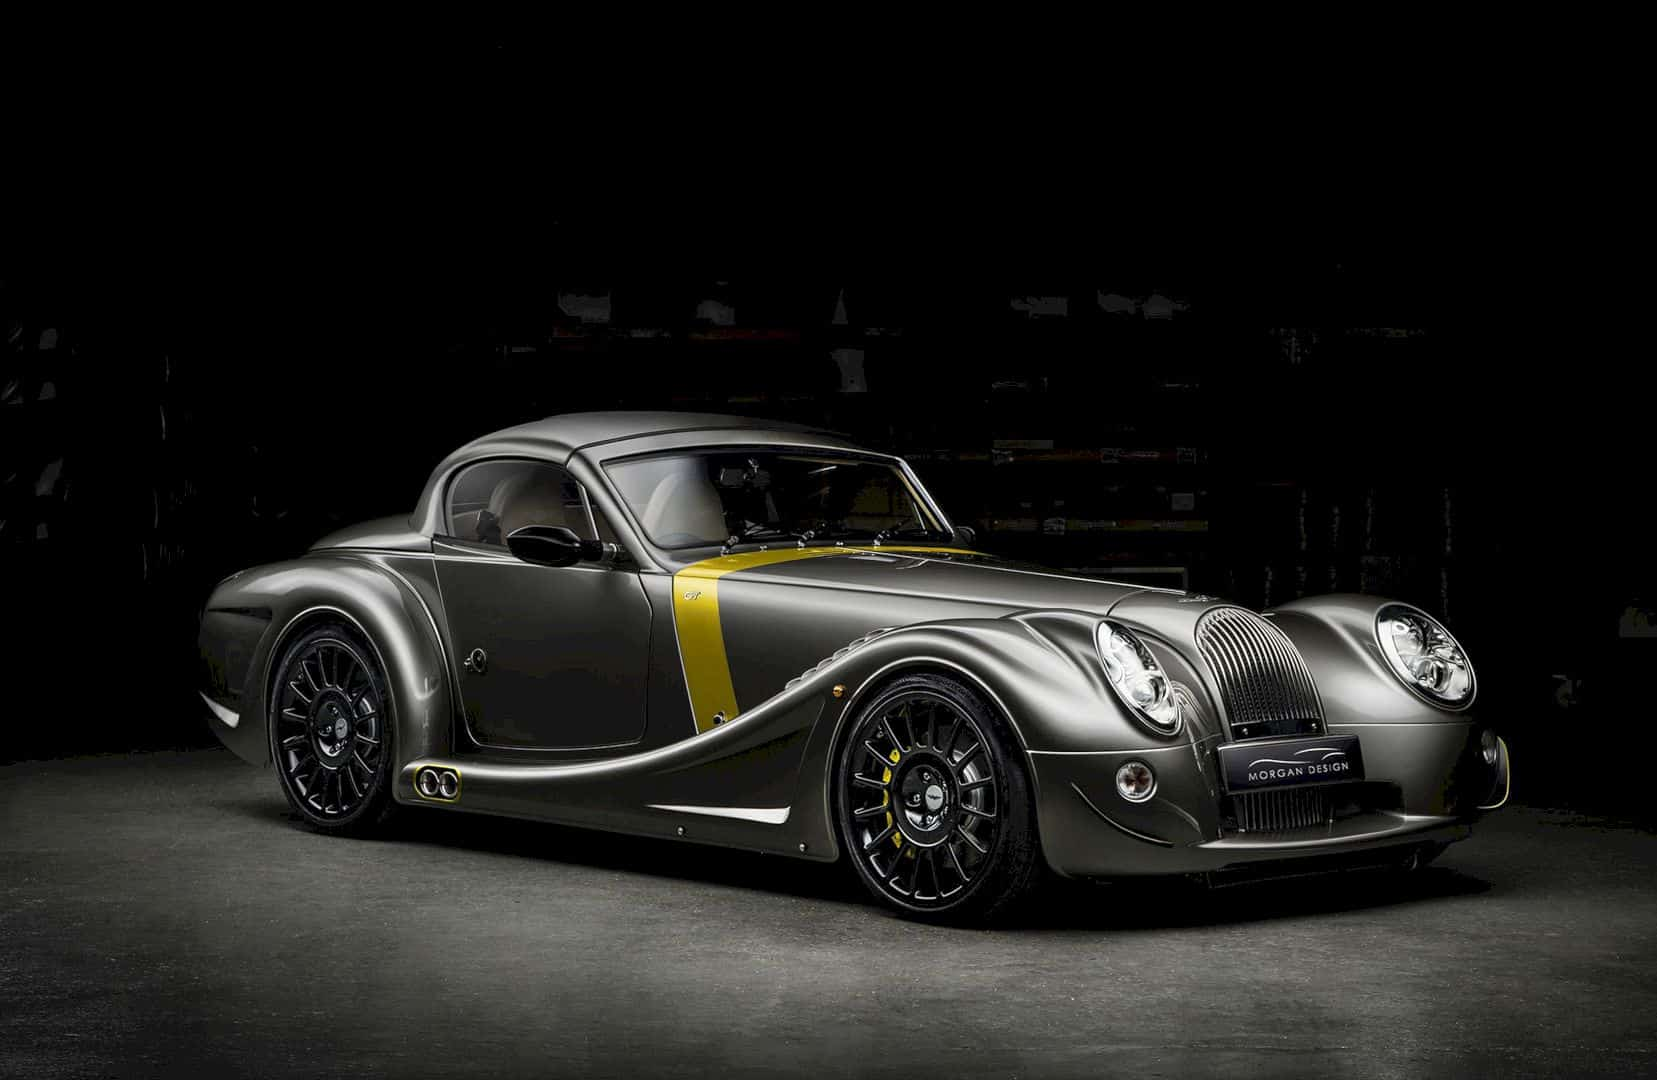 The Morgan Aero Gt 4